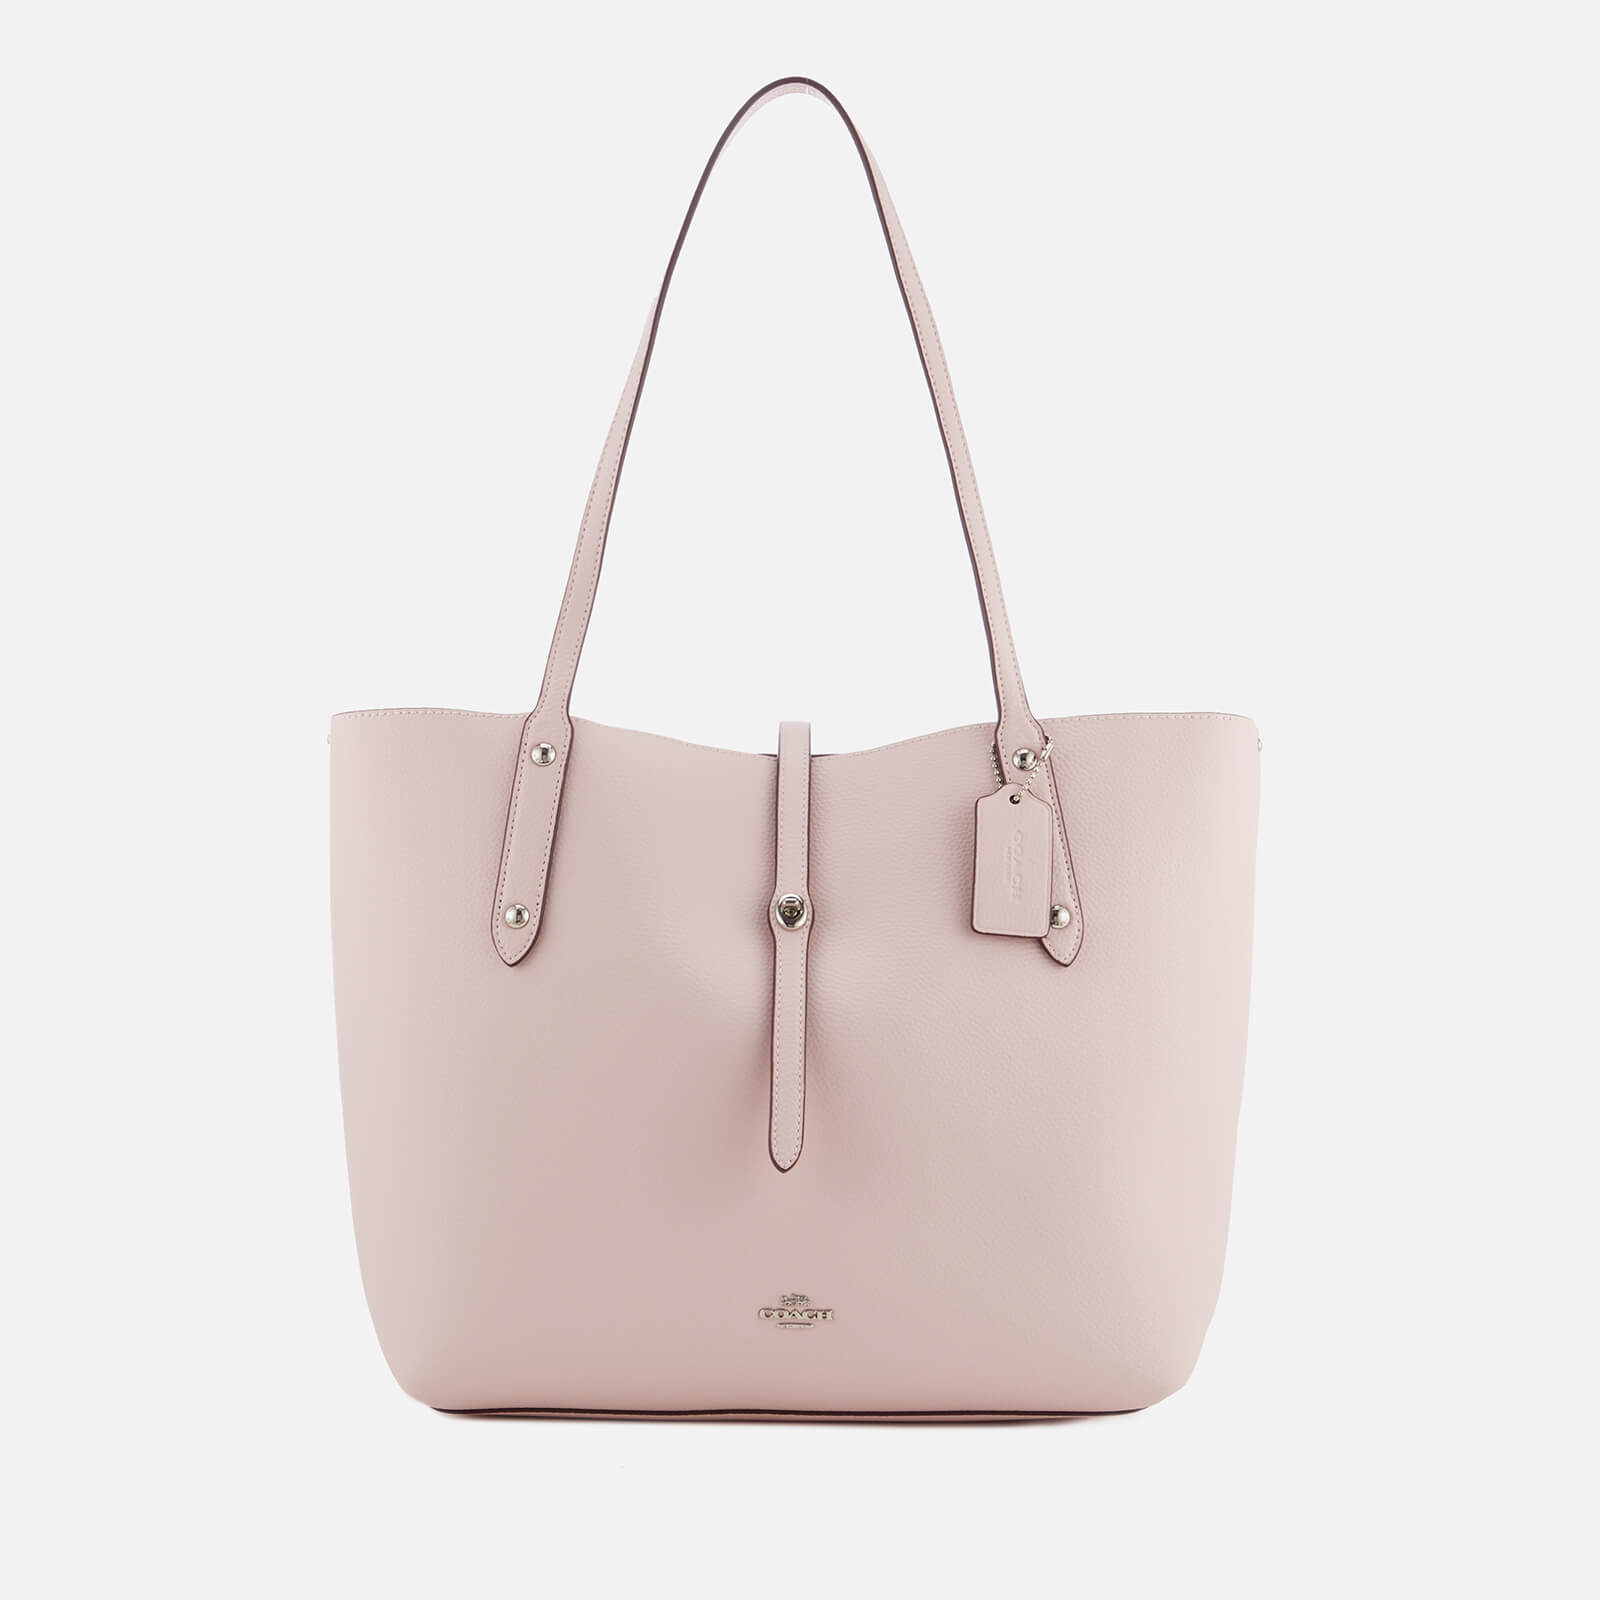 Coach Women s Market Tote Bag - Ice Pink - Free UK Delivery over £50 d7f72ef8fb7fd